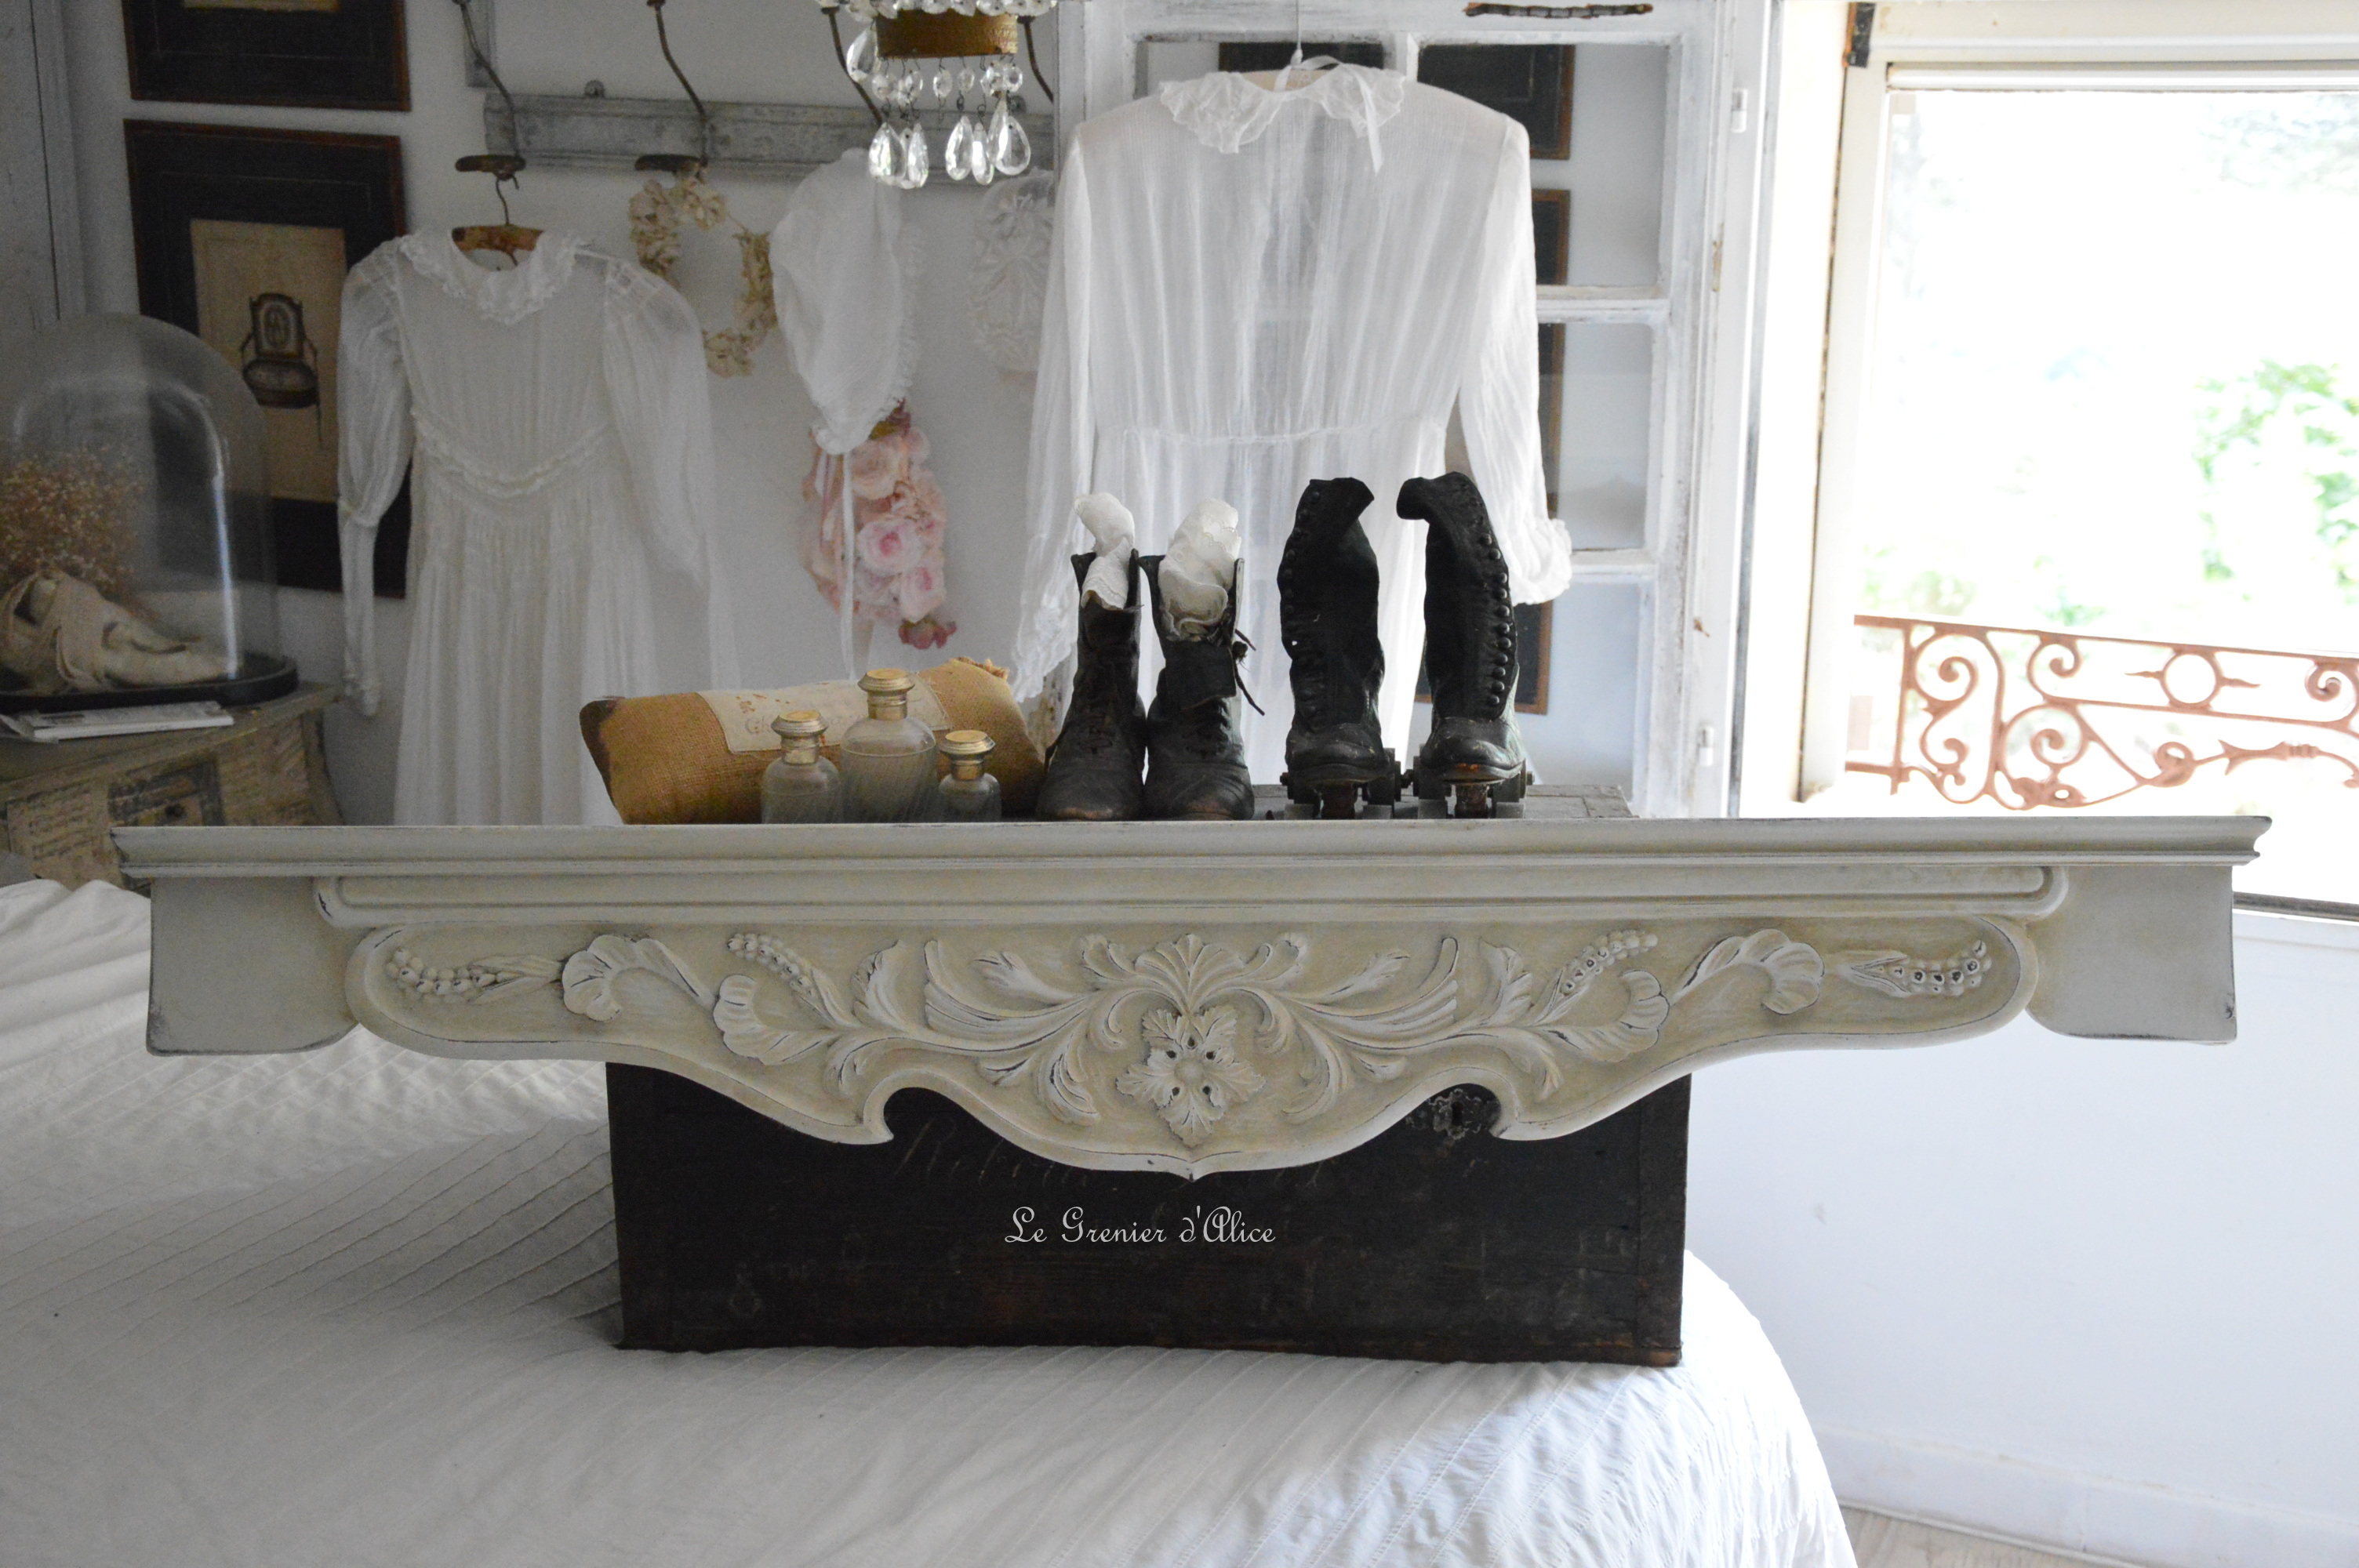 lit shabby gallery of linge de lit chic du linge de lit tras fleuri linge de lit shabby chic. Black Bedroom Furniture Sets. Home Design Ideas